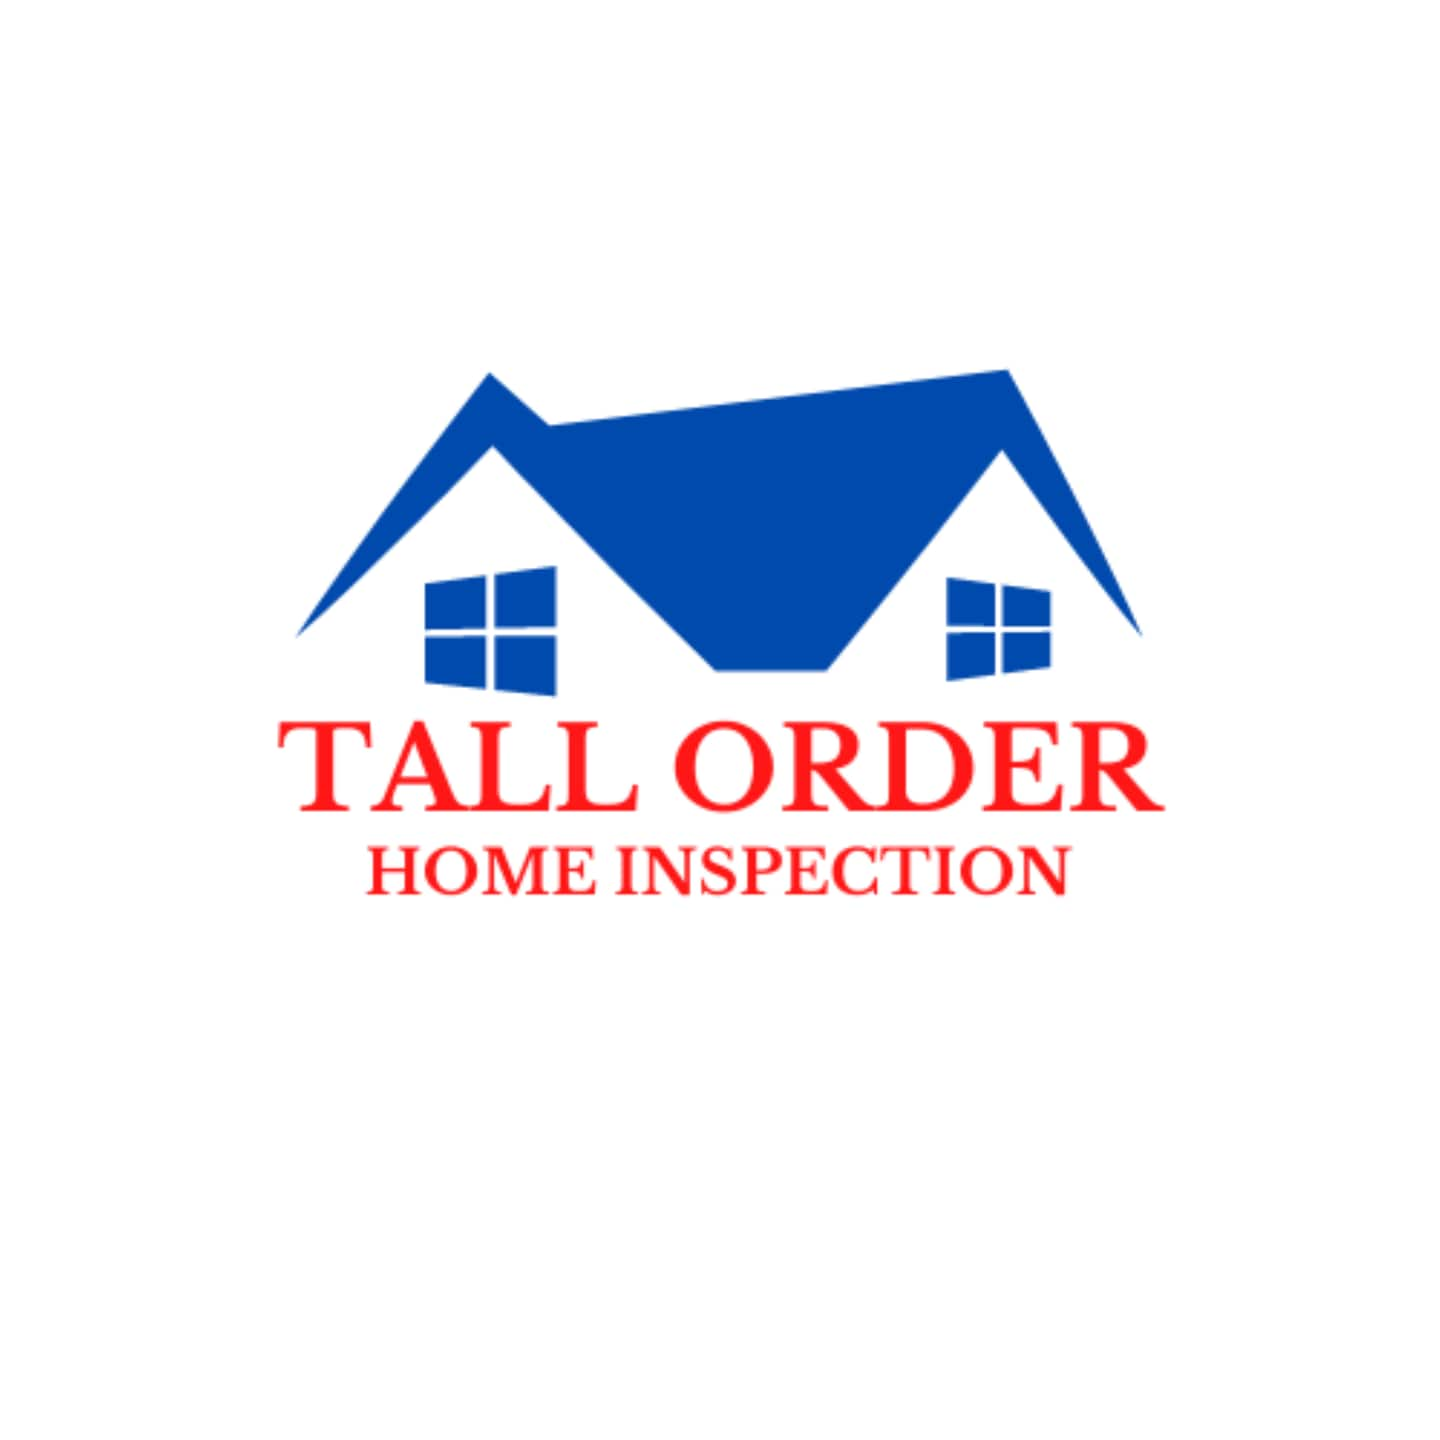 Tall Order Home Inspection